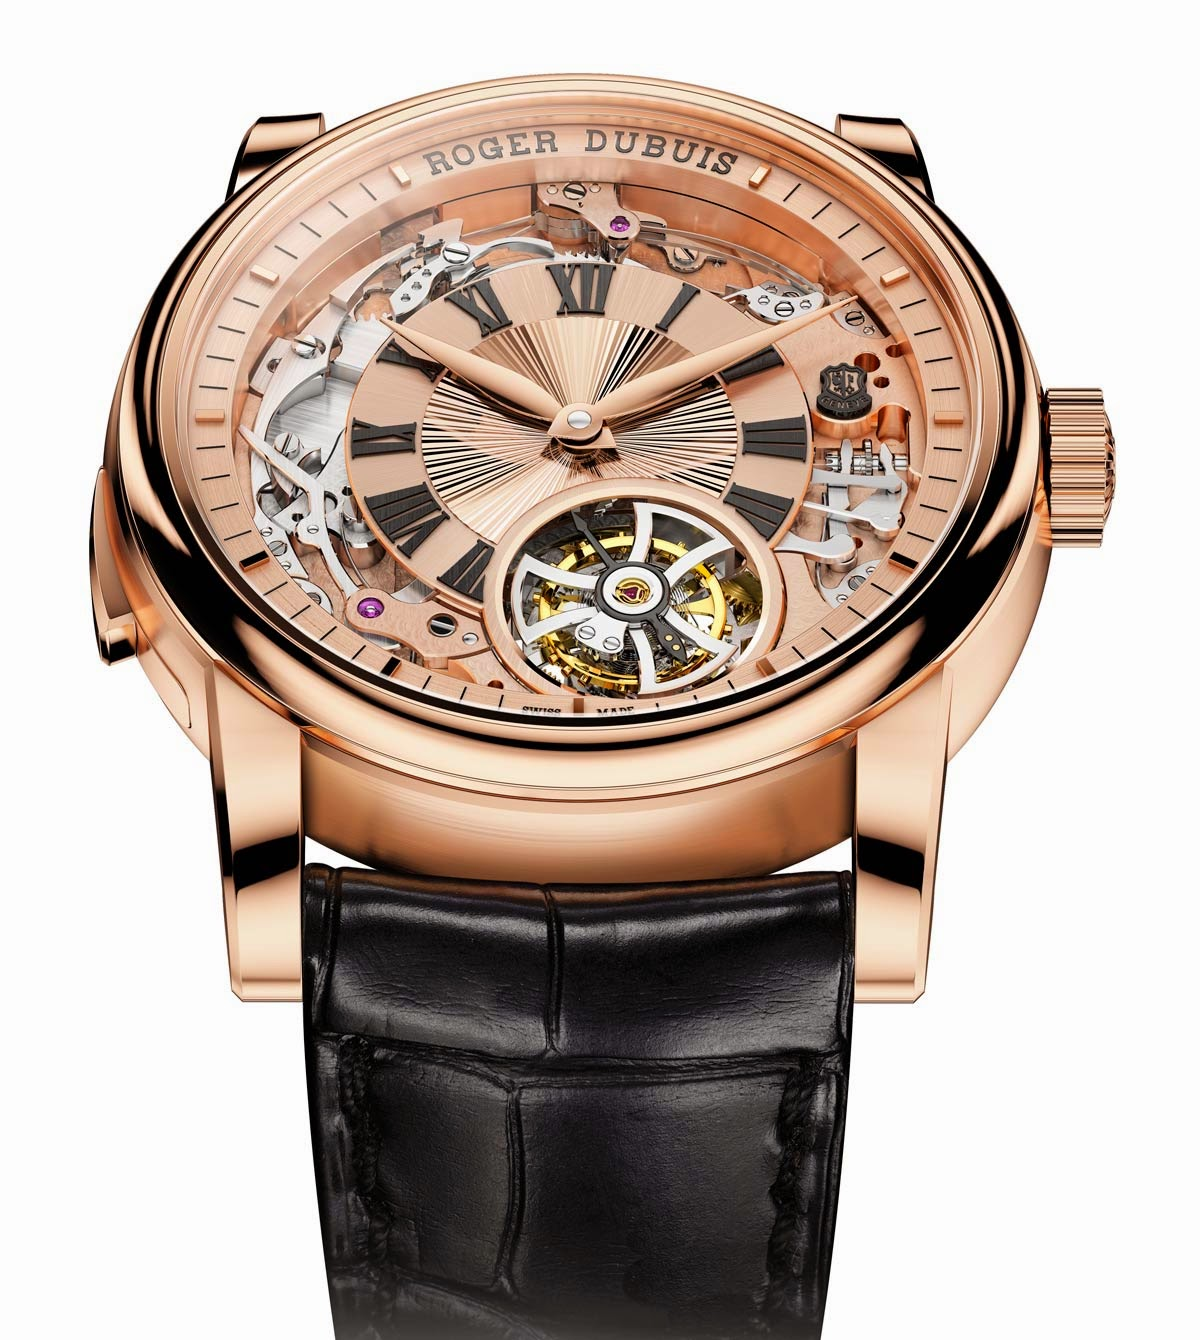 Roger Dubuis Minute Repeater Tourbillon Automatic